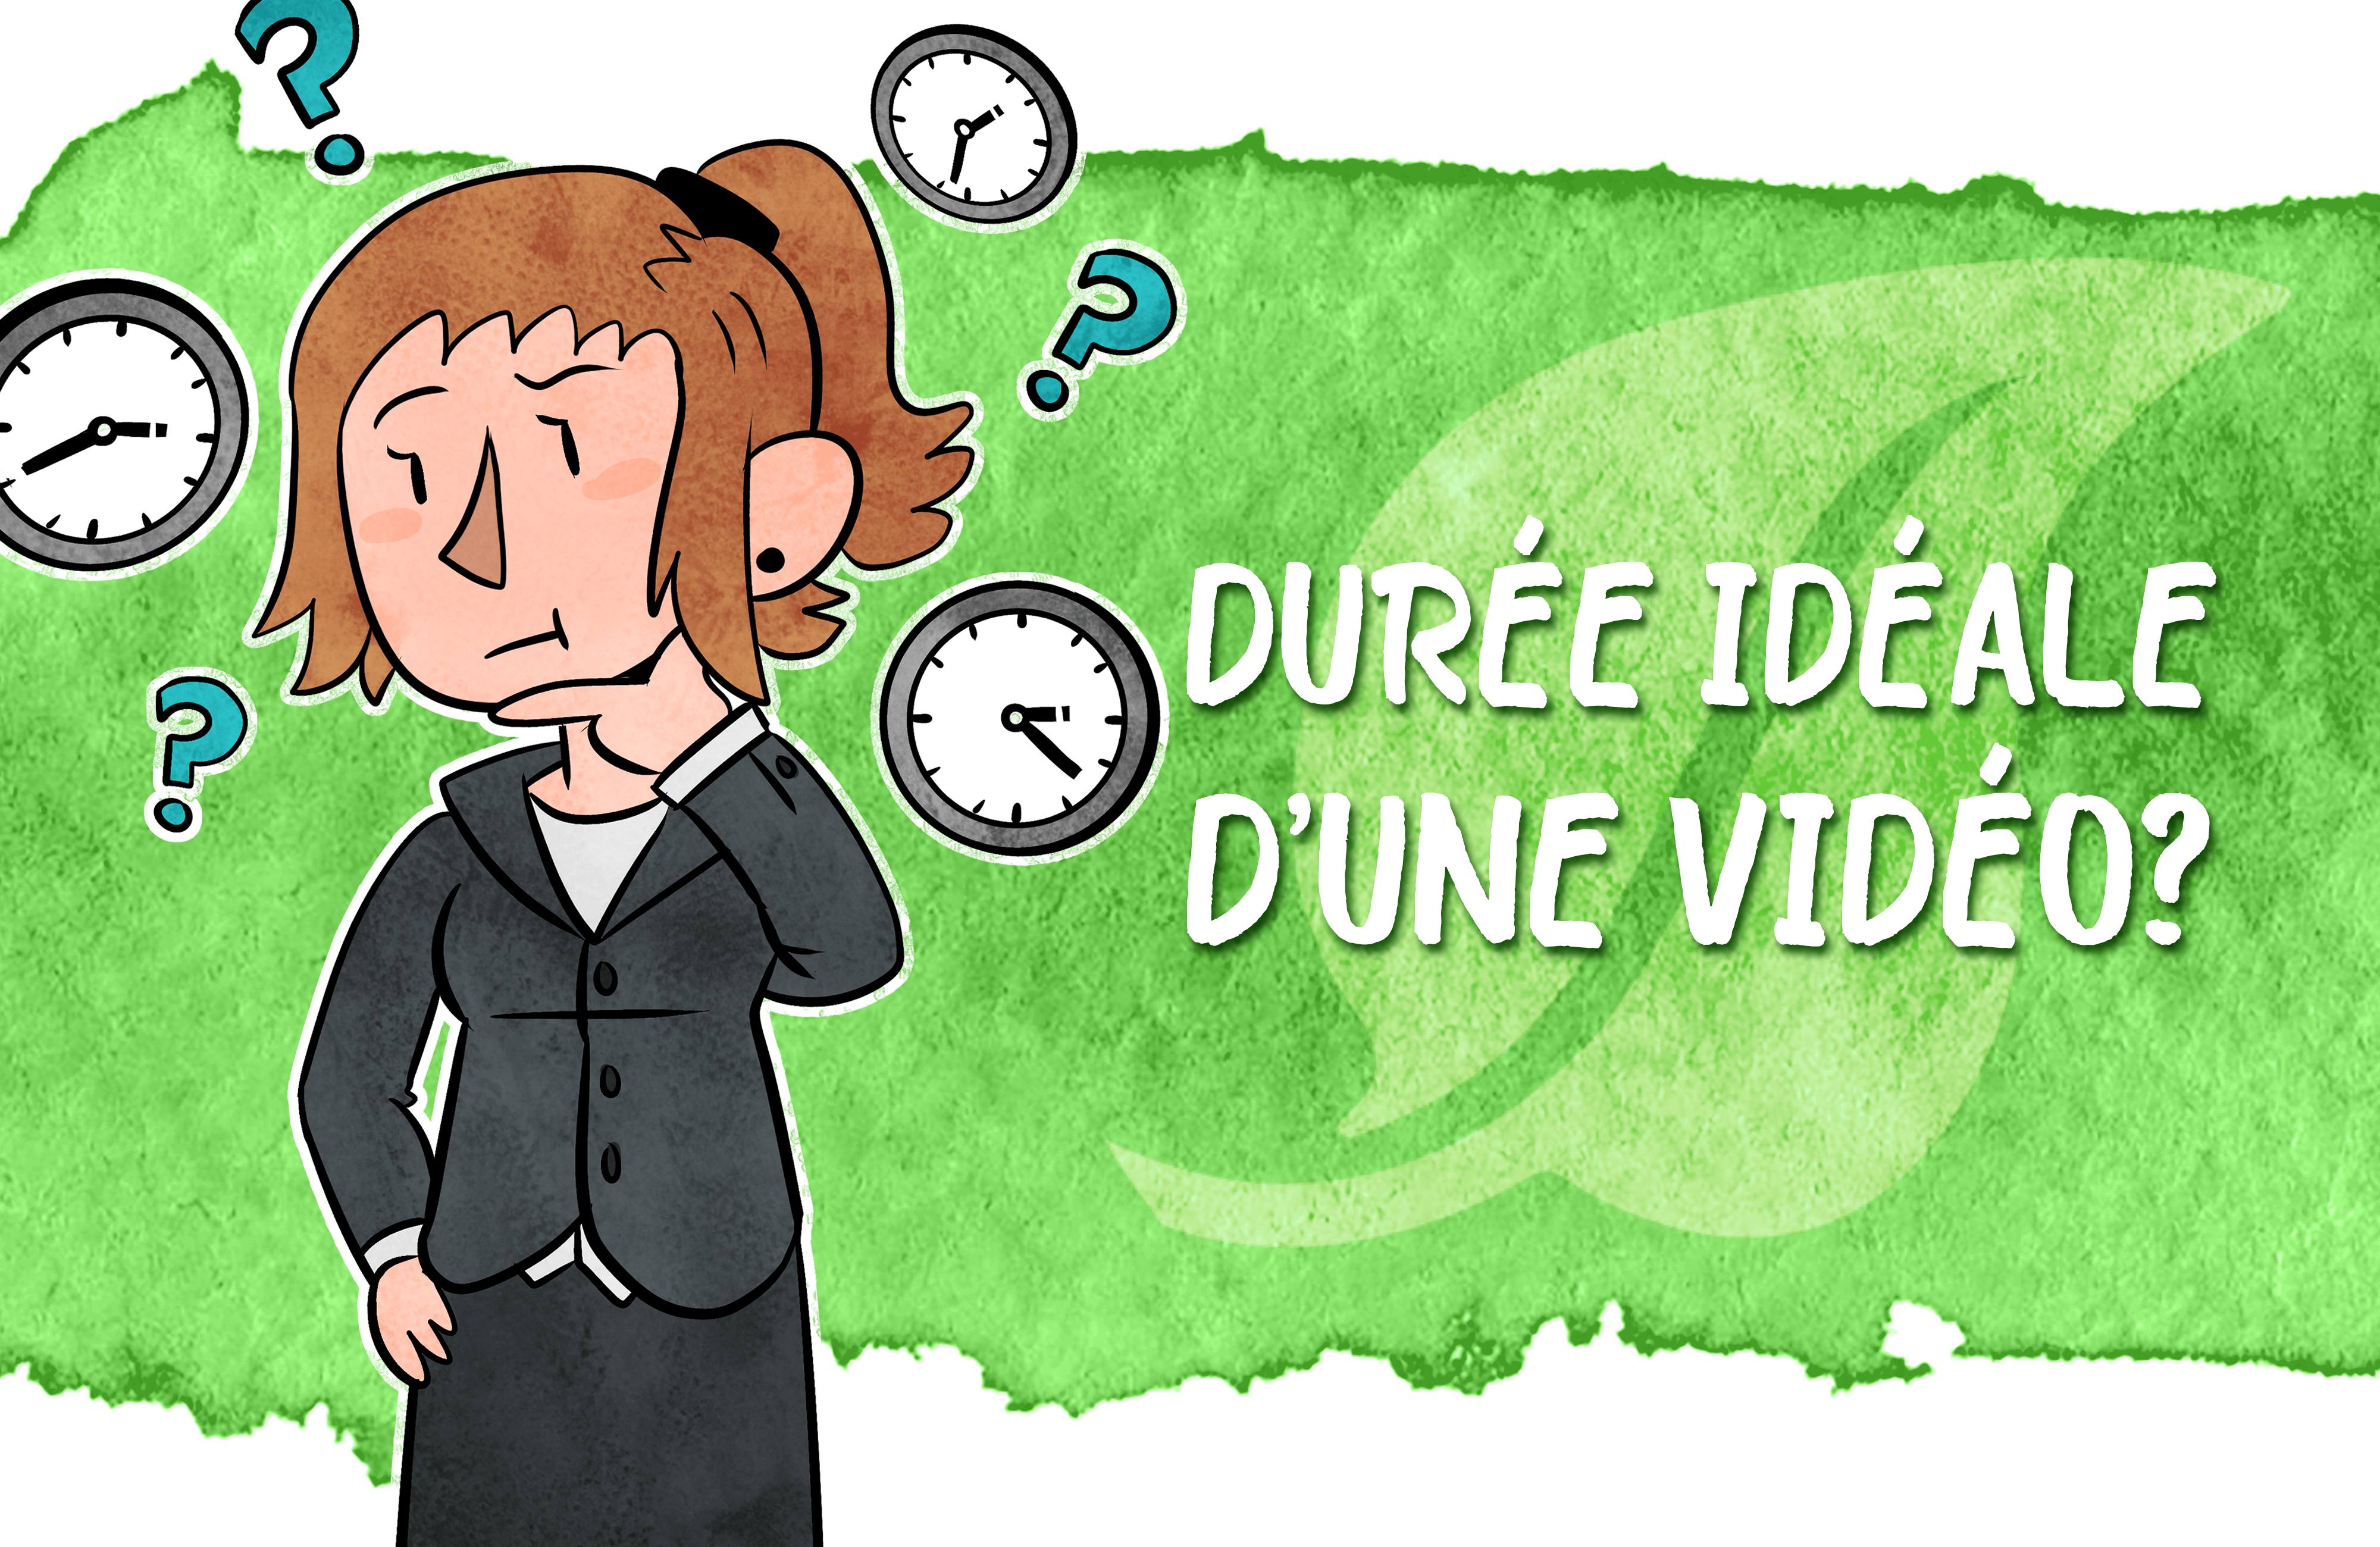 Comment d finir la dur e id ale d 39 une vid o en ligne for Combien coute une sci